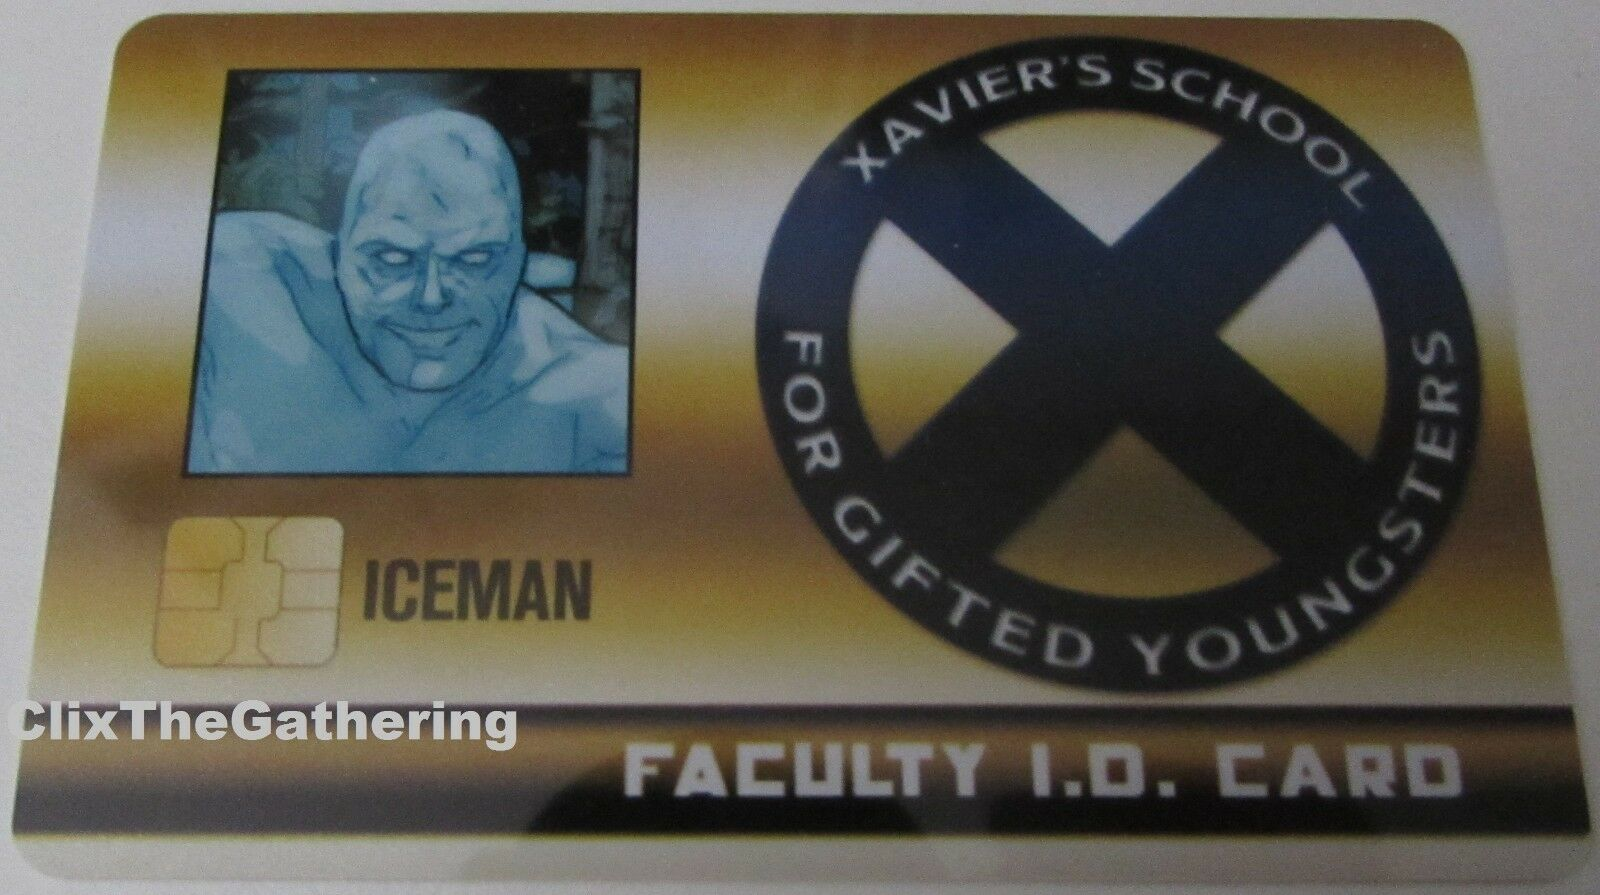 ICEMAN FACULTY STUDENT ID CARD XID-019 X-Men Xavier's School Marvel HeroClix